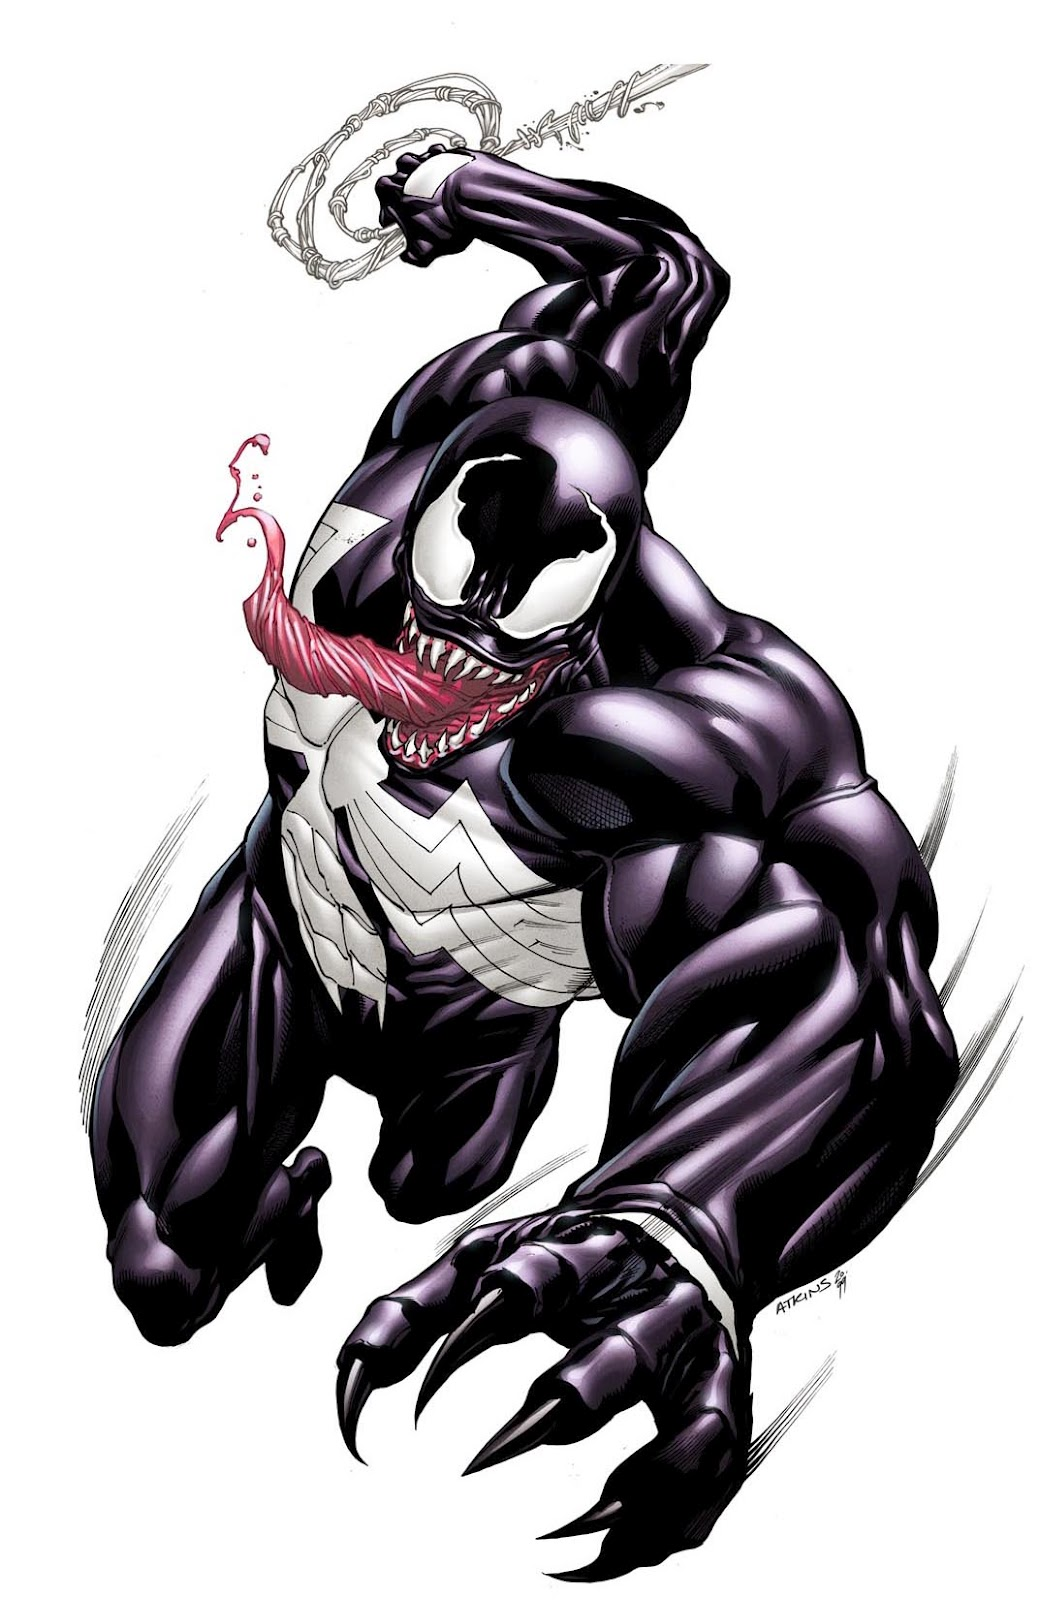 TIL that the concept for the Spider-Man villain, Venom ...